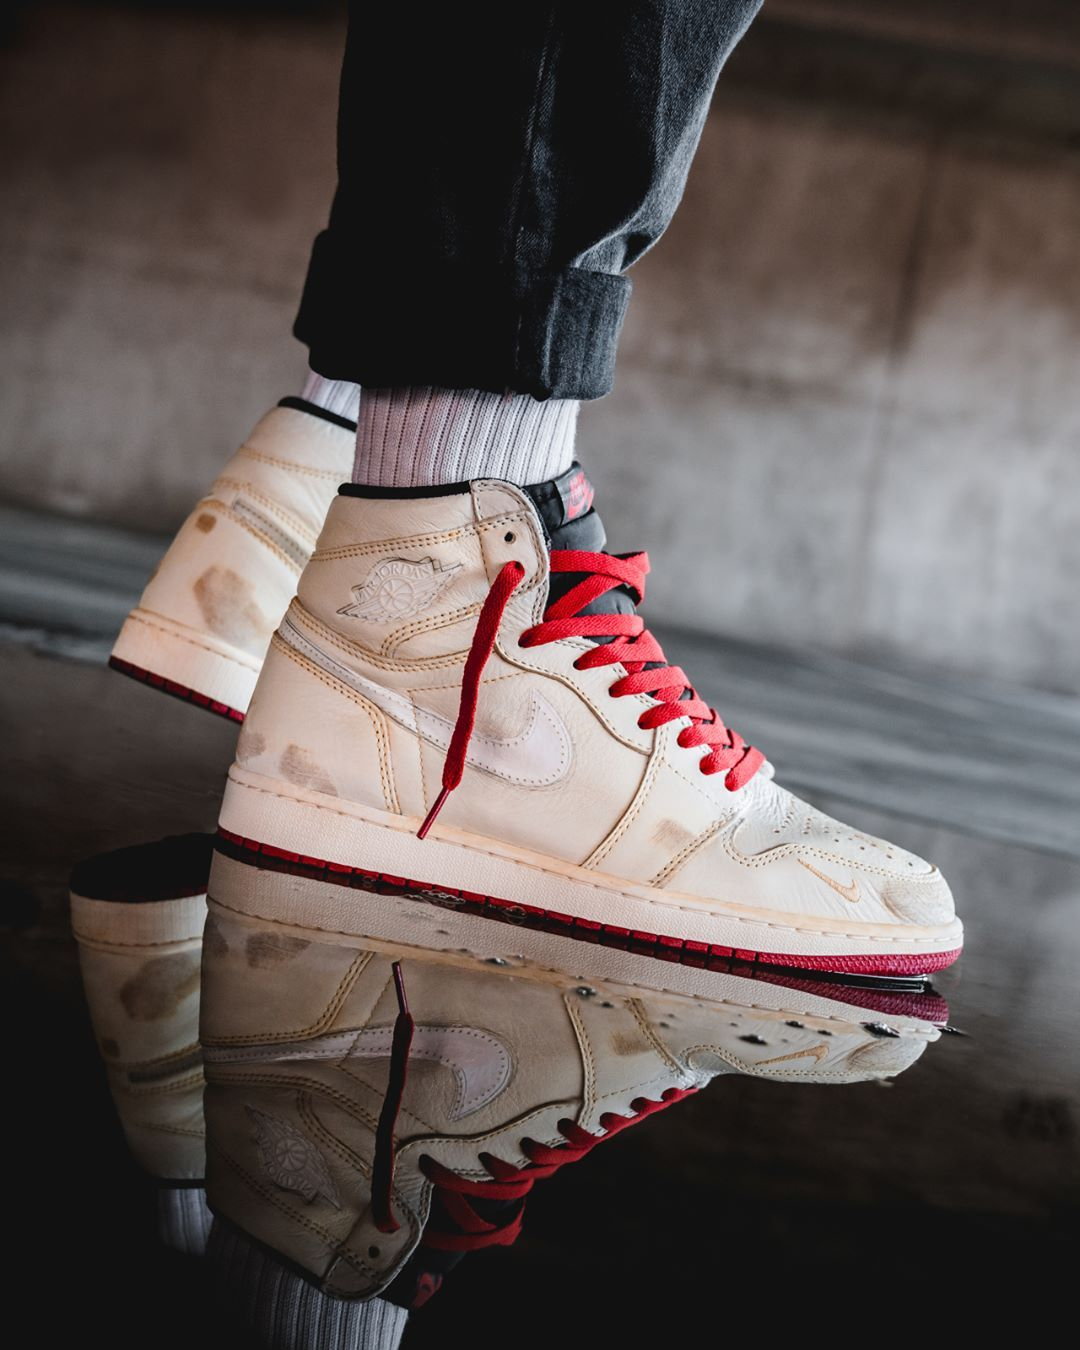 super popular a1df9 a21de Nigel Sylvester x Air Jordan 1 High | All Things Good in ...